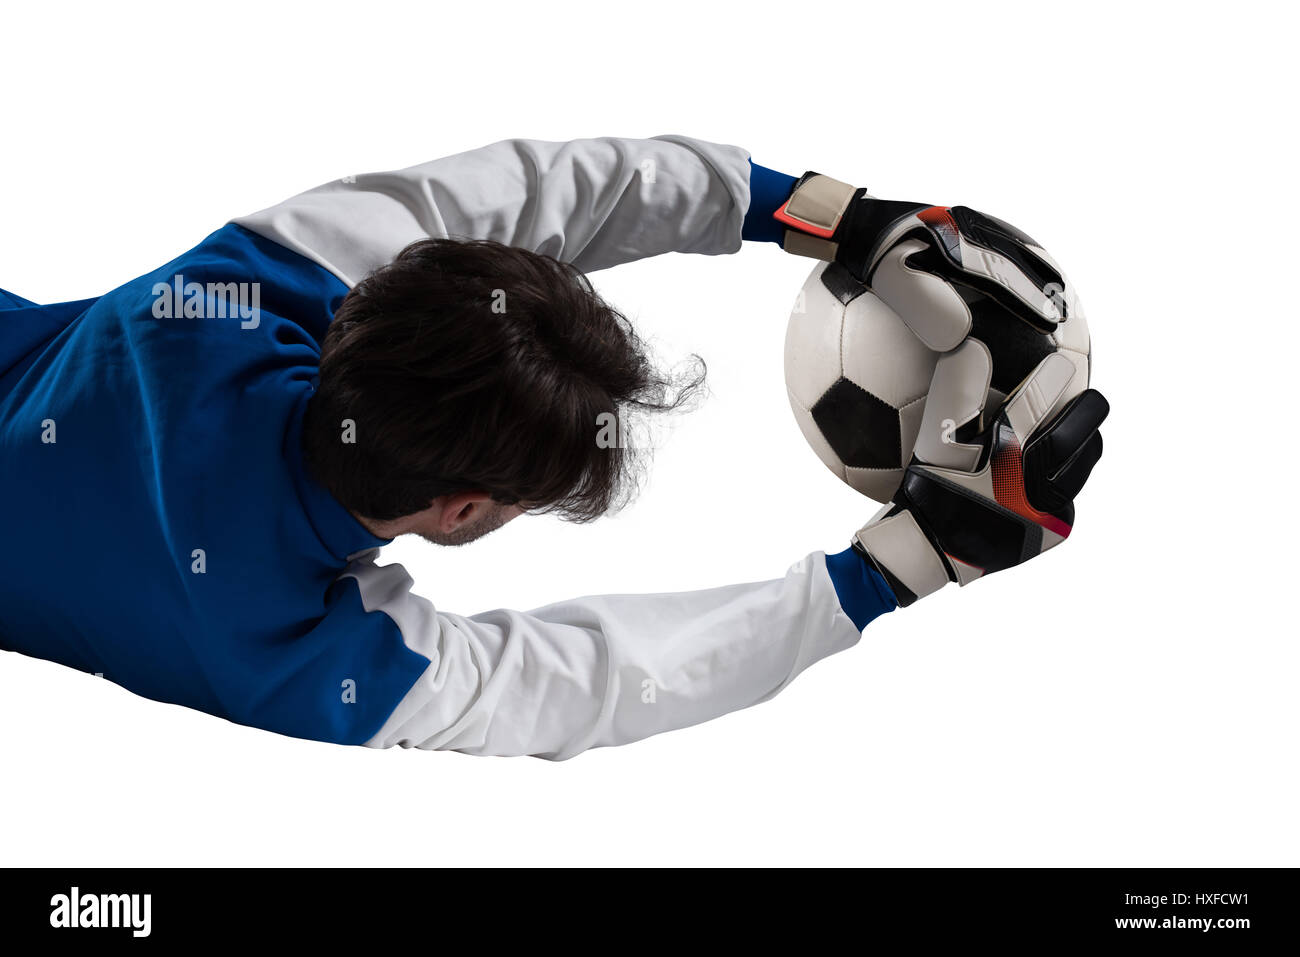 Goalkeeper catches the ball - Stock Image